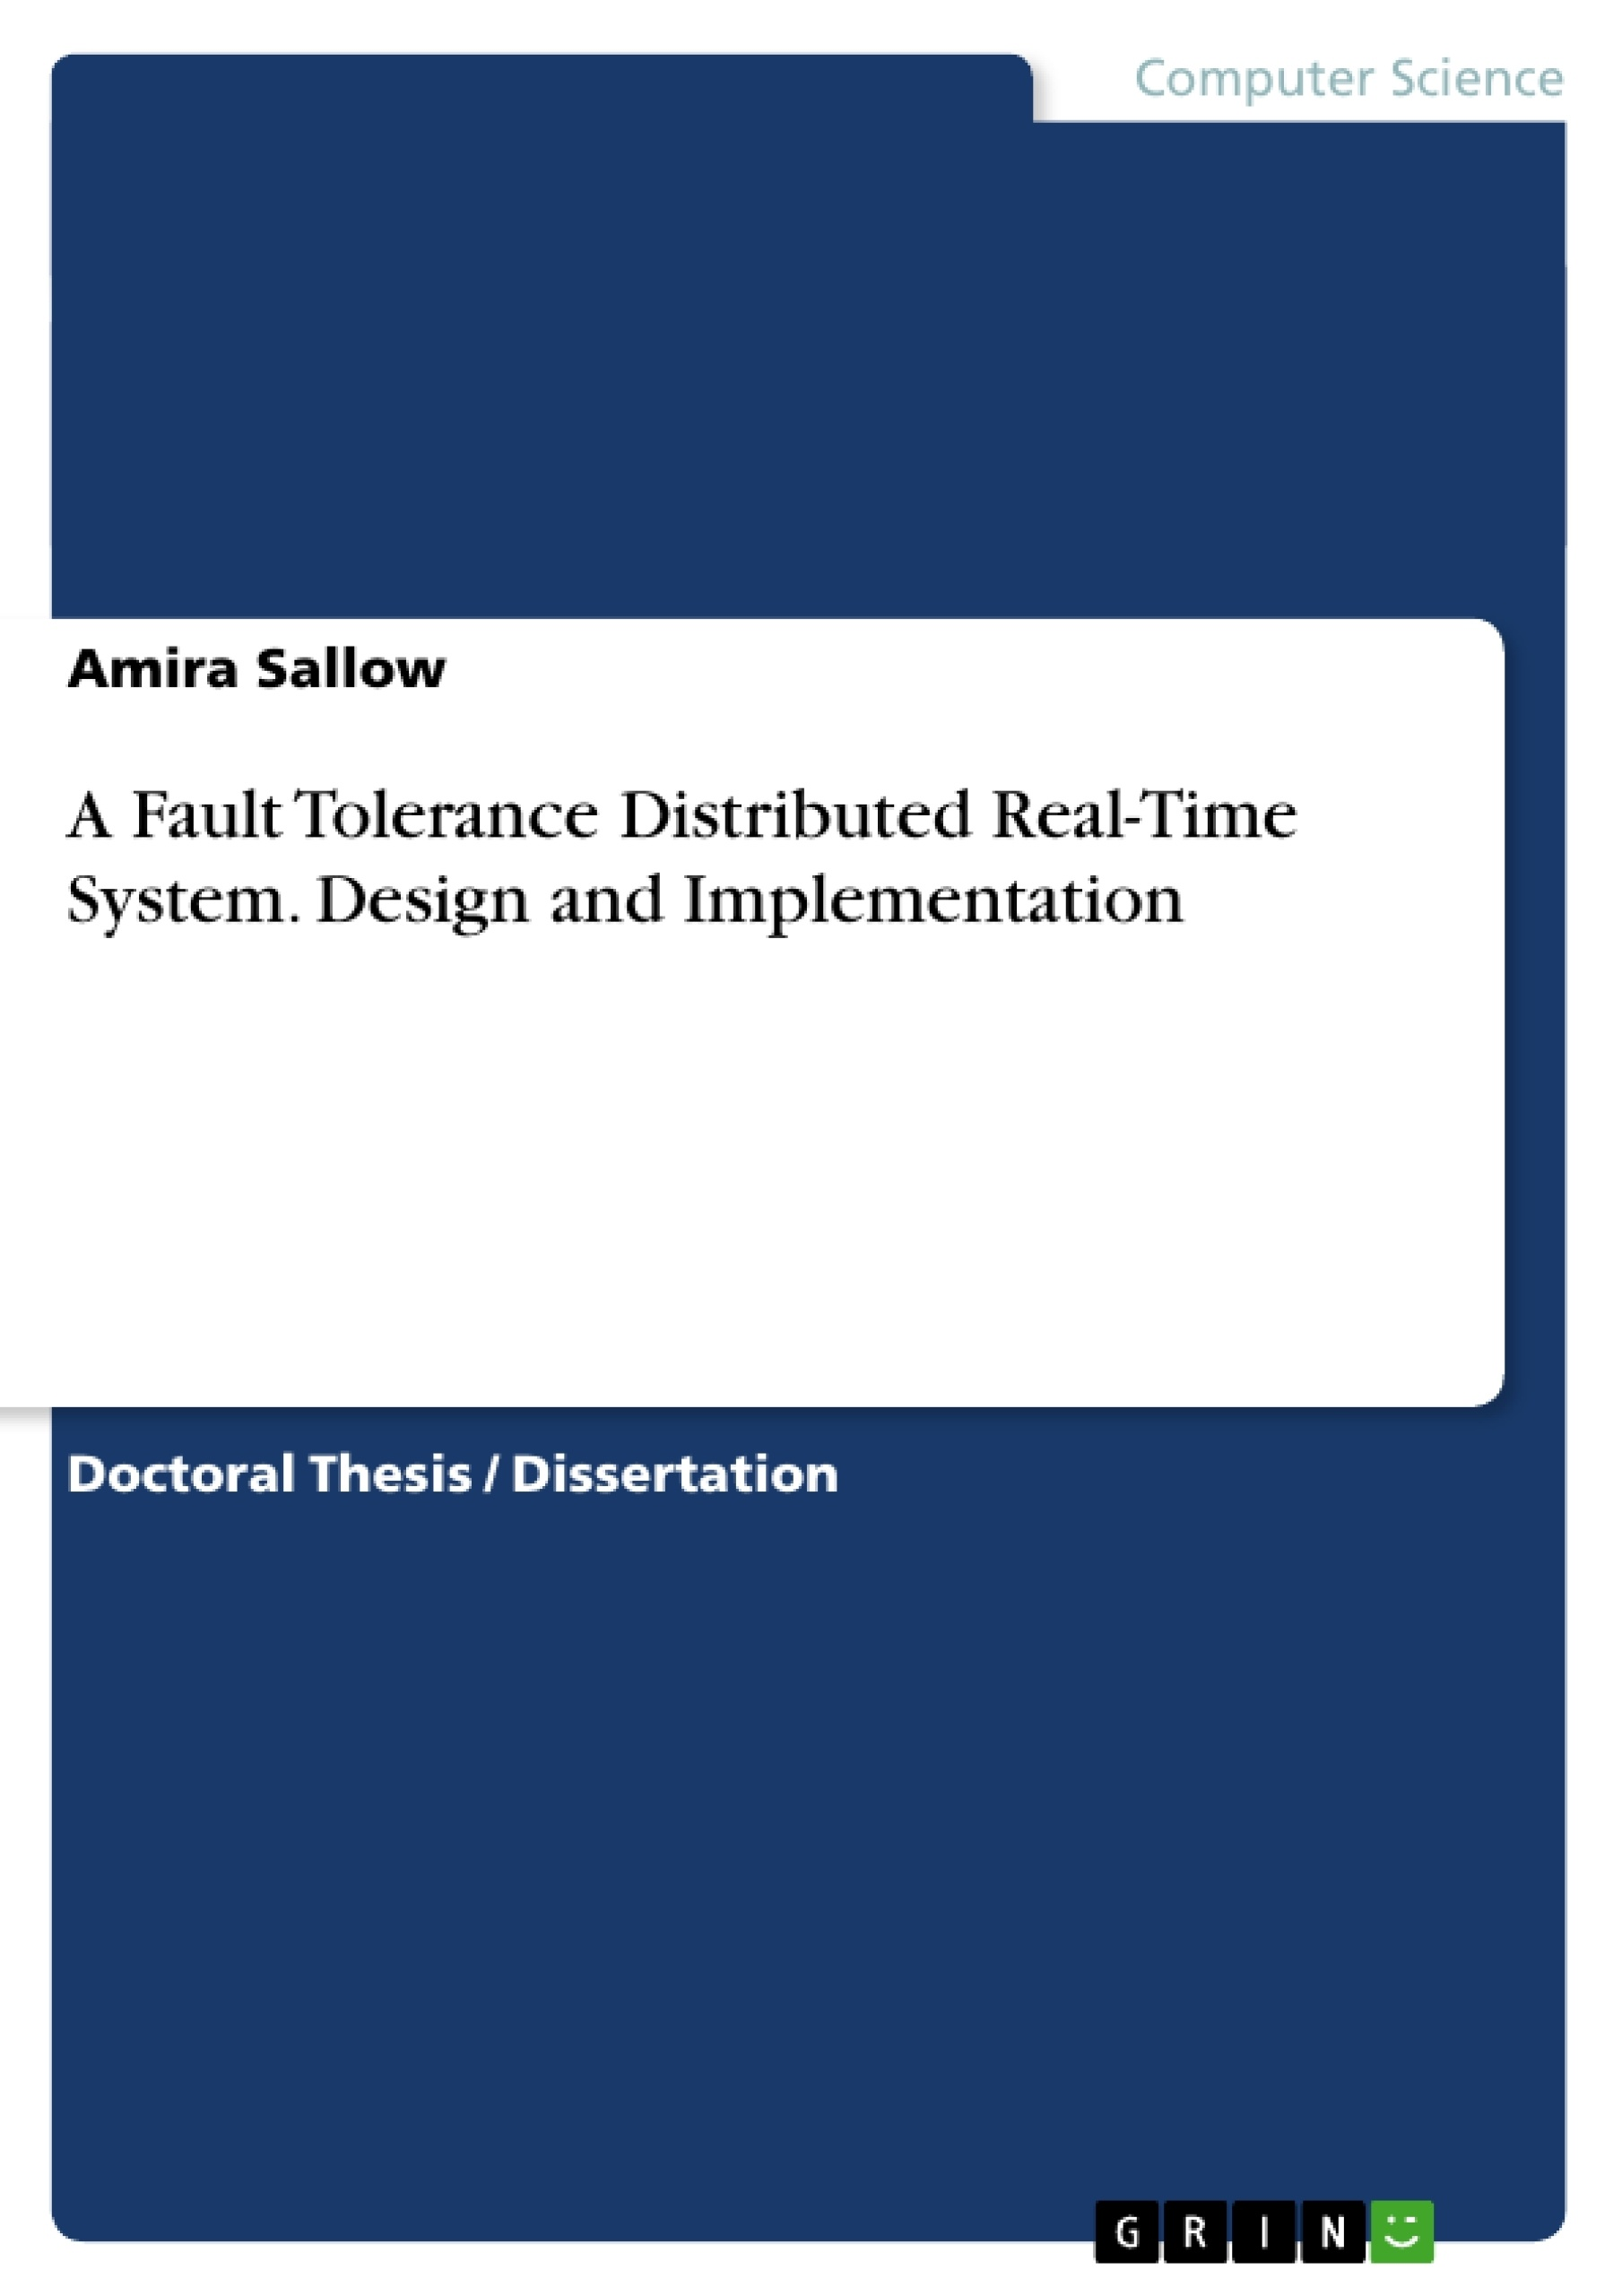 Title: A Fault Tolerance Distributed Real-Time System. Design and Implementation